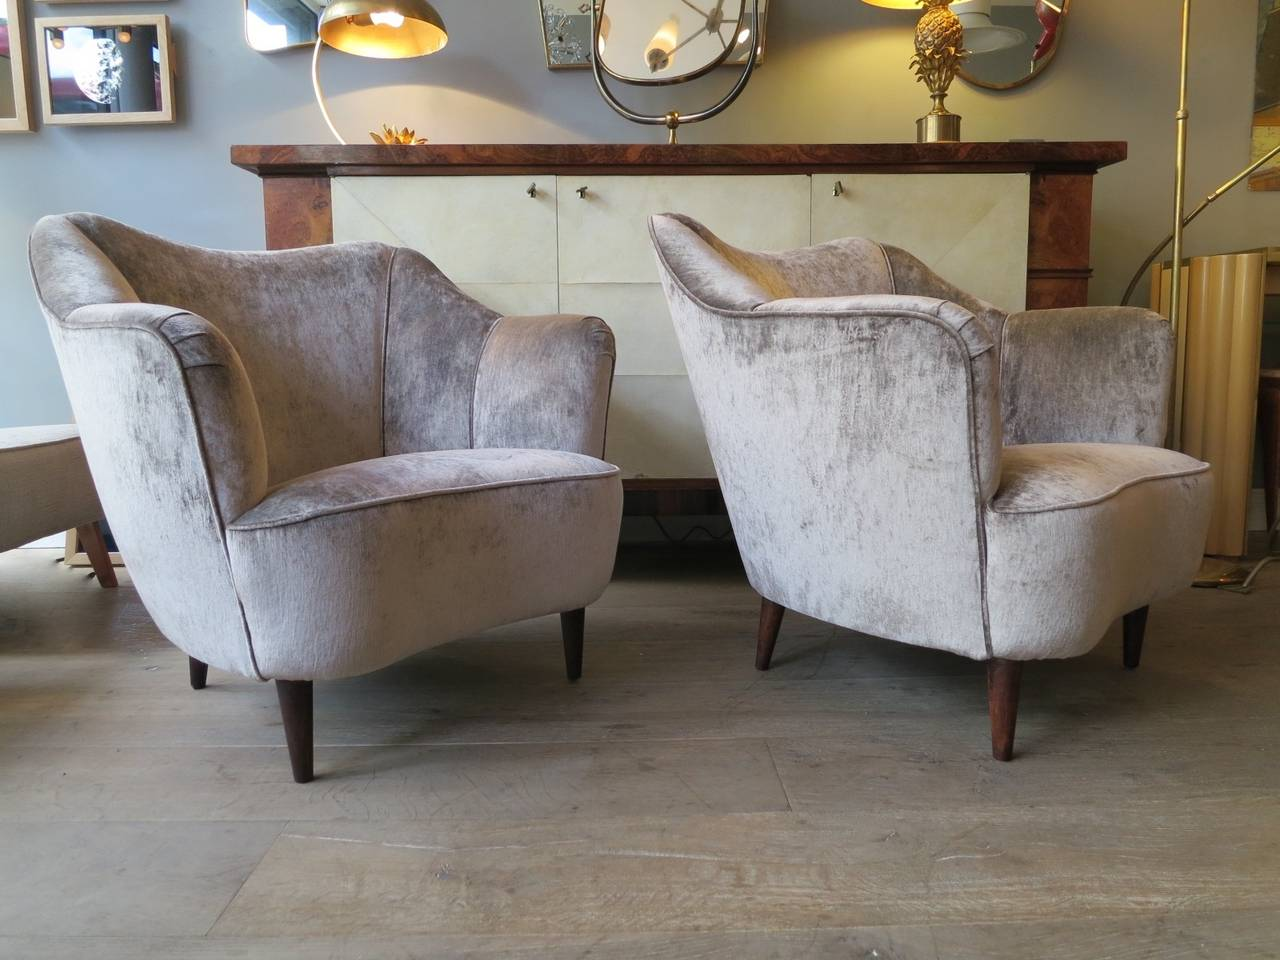 Italian 1950s Salon Suite with Curved Sofa and Armchair ...